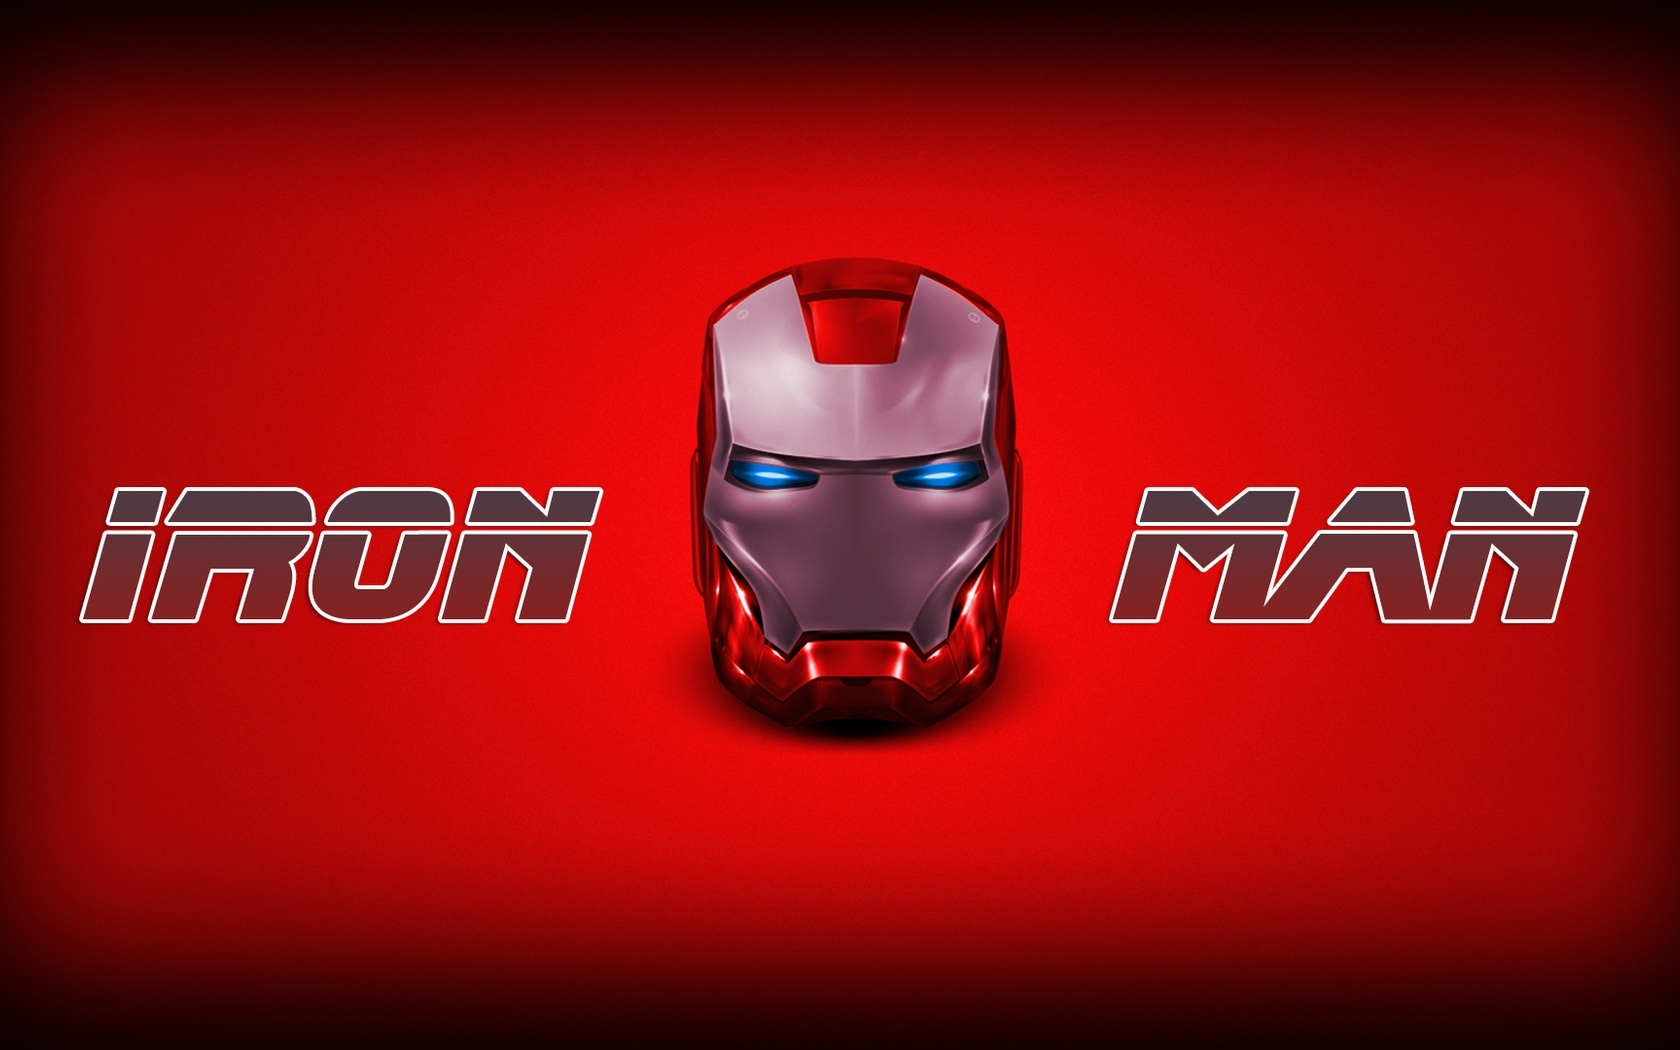 iron-man-logo-wallpaper | wallpaper.wiki